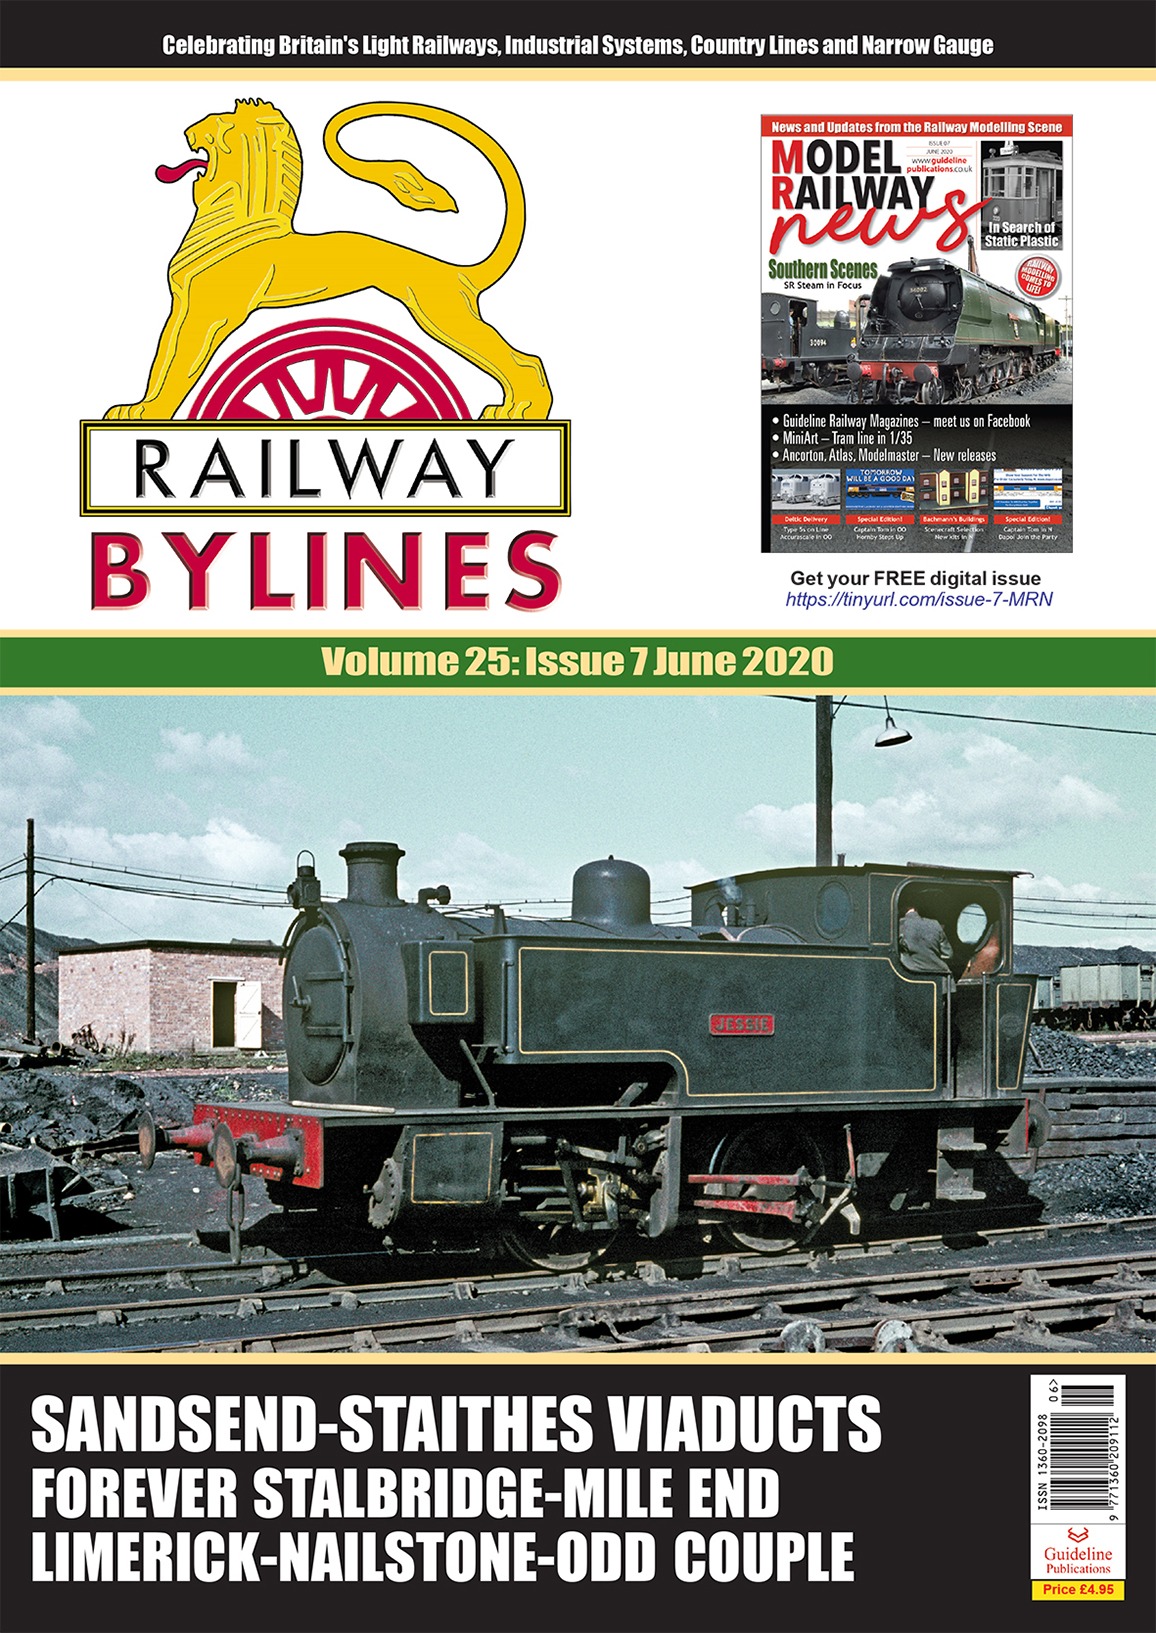 Guideline Publications Railway Bylines  vol 25 - issue 7 June 2020